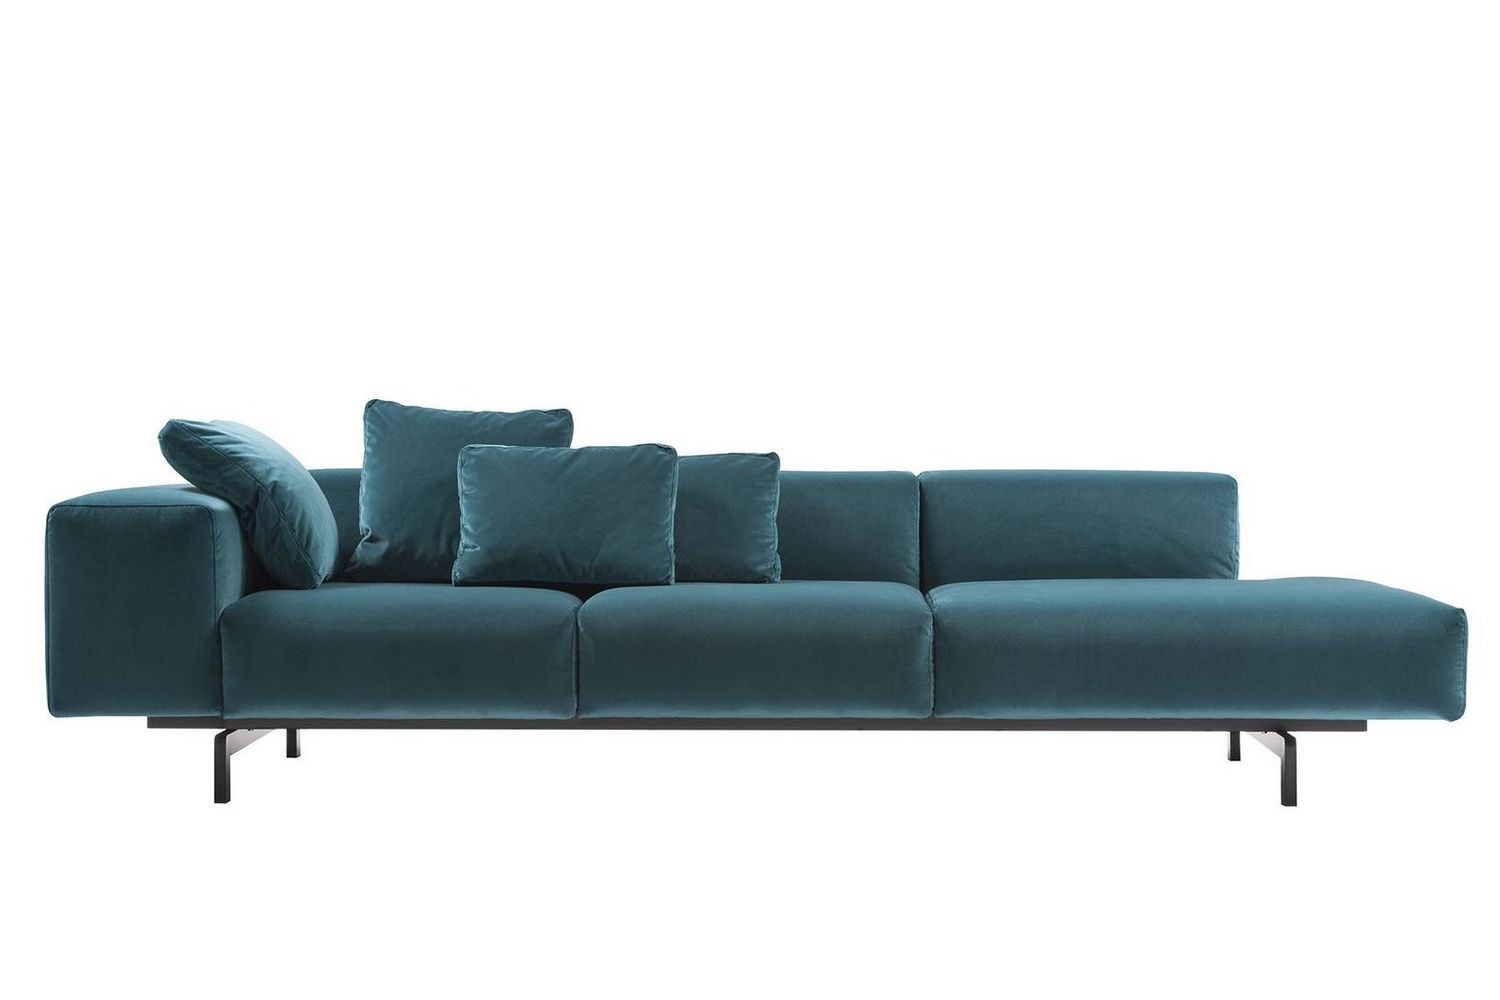 velvet sofas melbourne sofa seats theatre in delhi largo velluto by piero lissoni for kartell | space ...